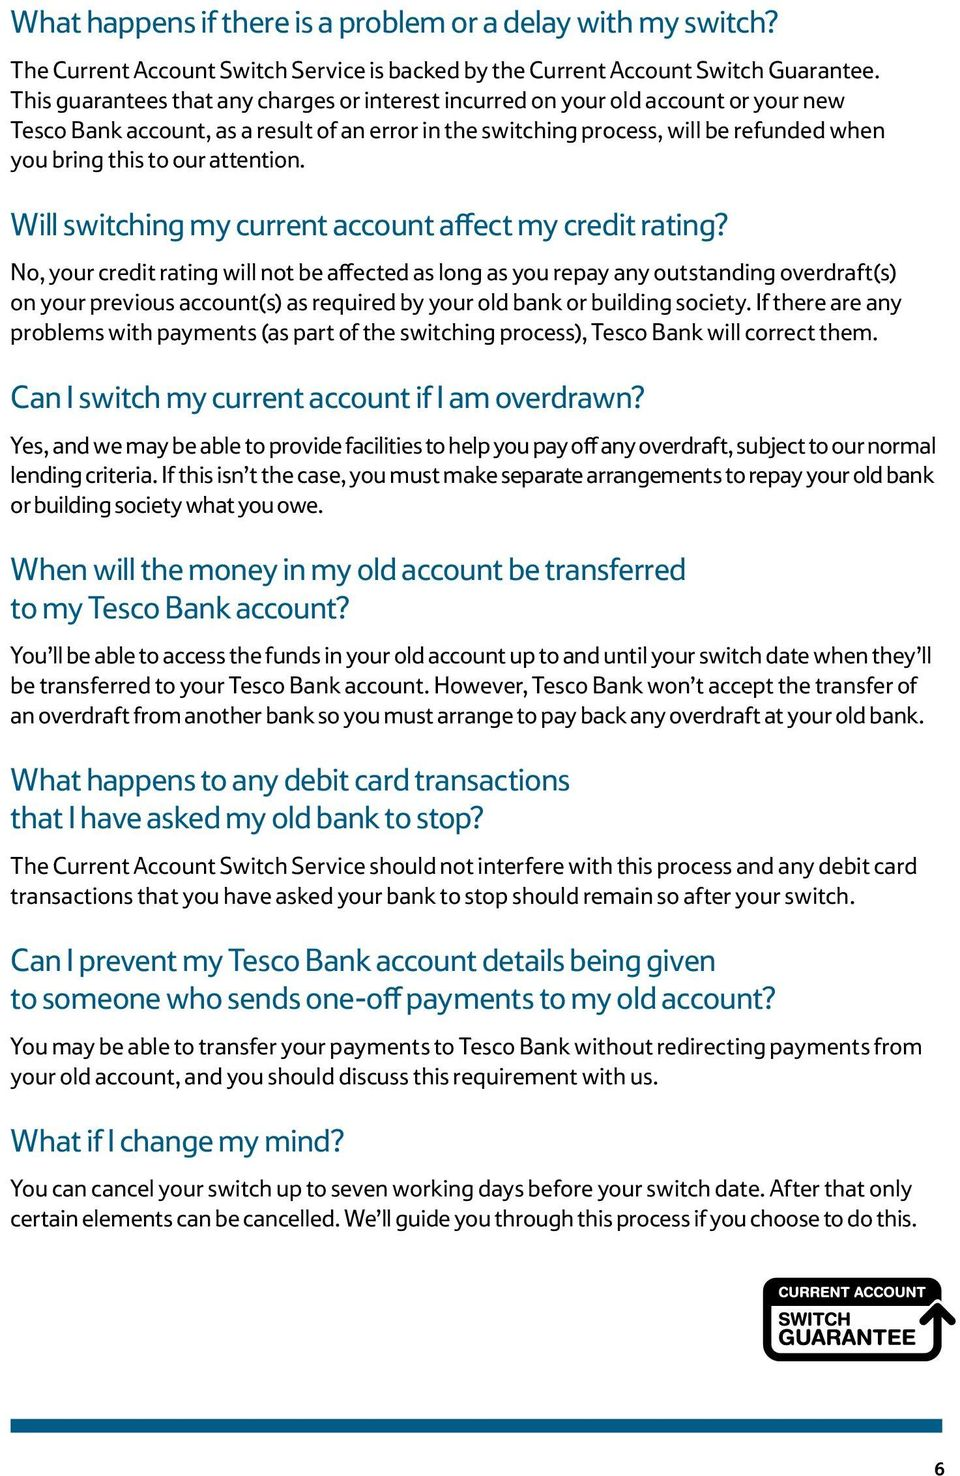 attention. Will switching my current account affect my credit rating?